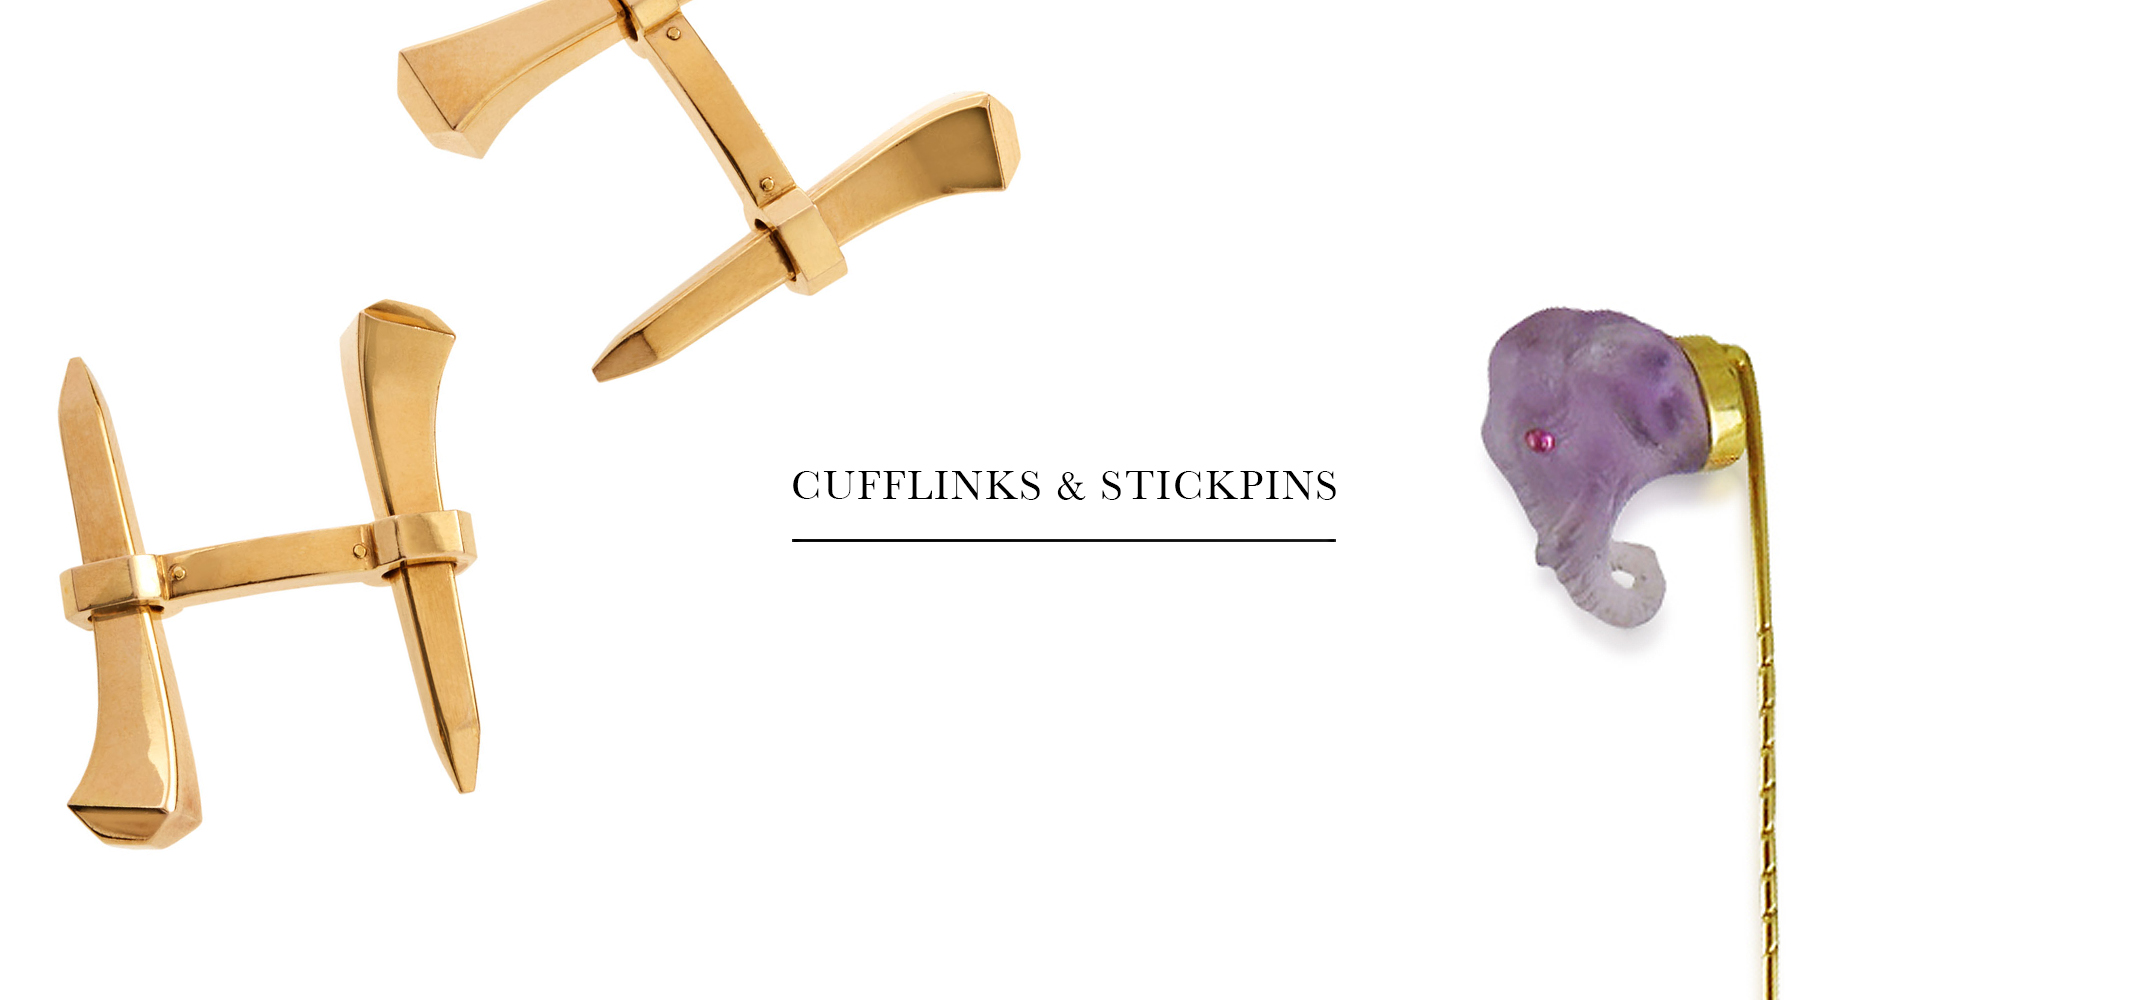 CUFFLINKS AND STICKPINS Banner 1.jpg